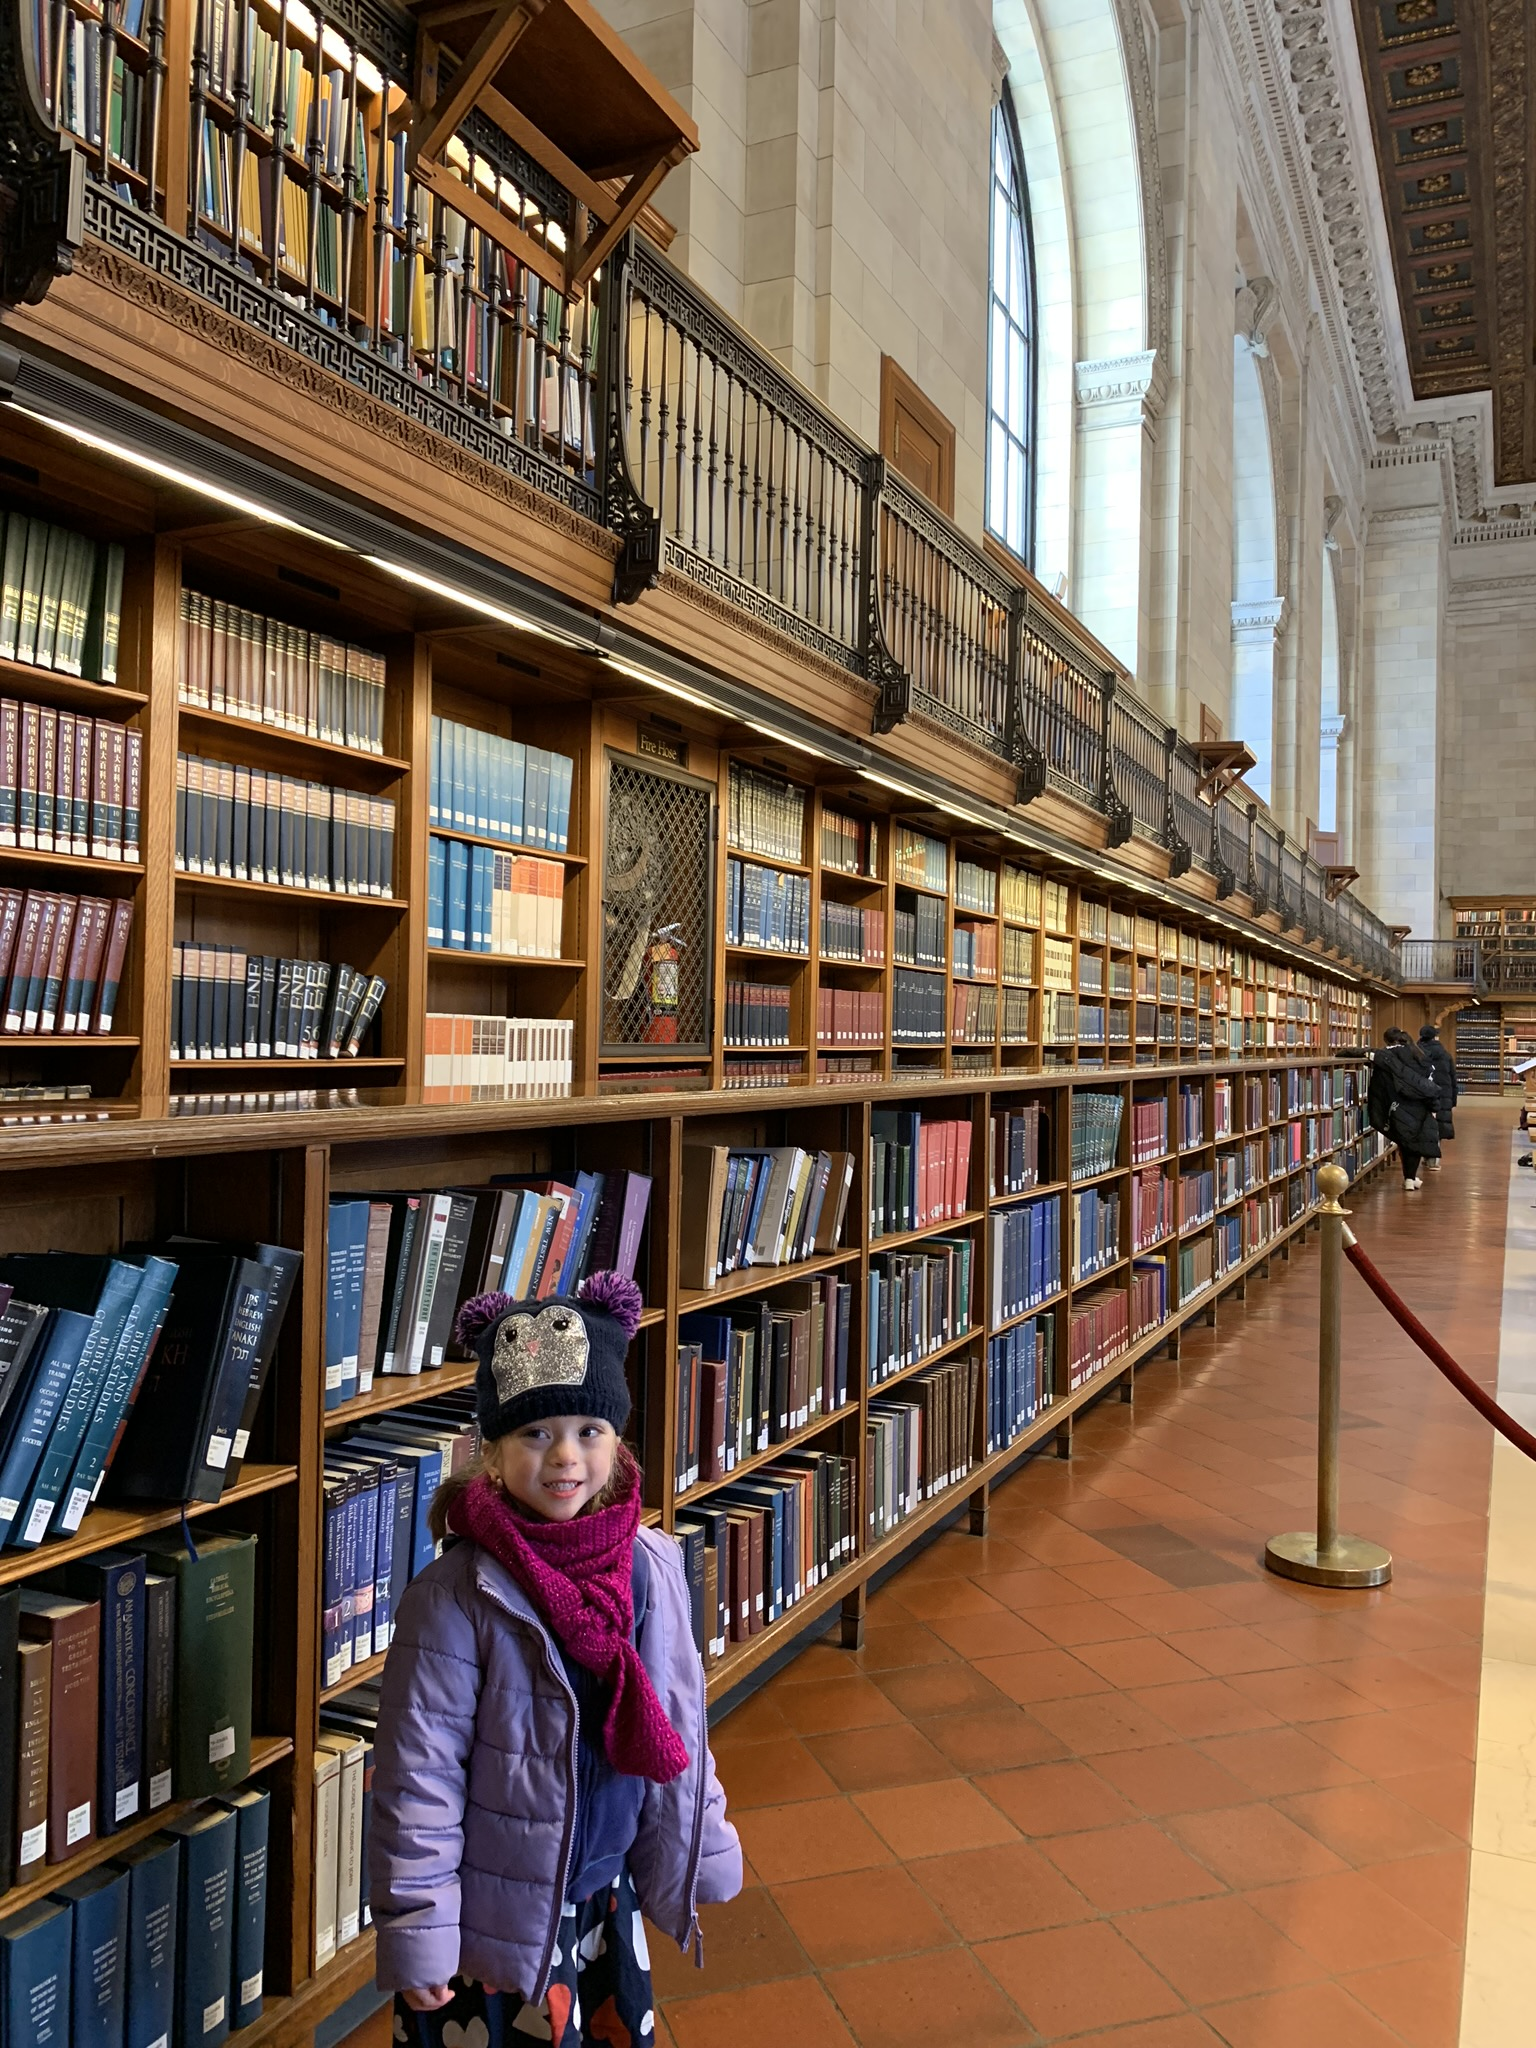 ... and then took her to the research floor with the grand hall of books. We had recently watched  Beauty and the Beast  so it was fun to show her the big bookshelves like in the castle.